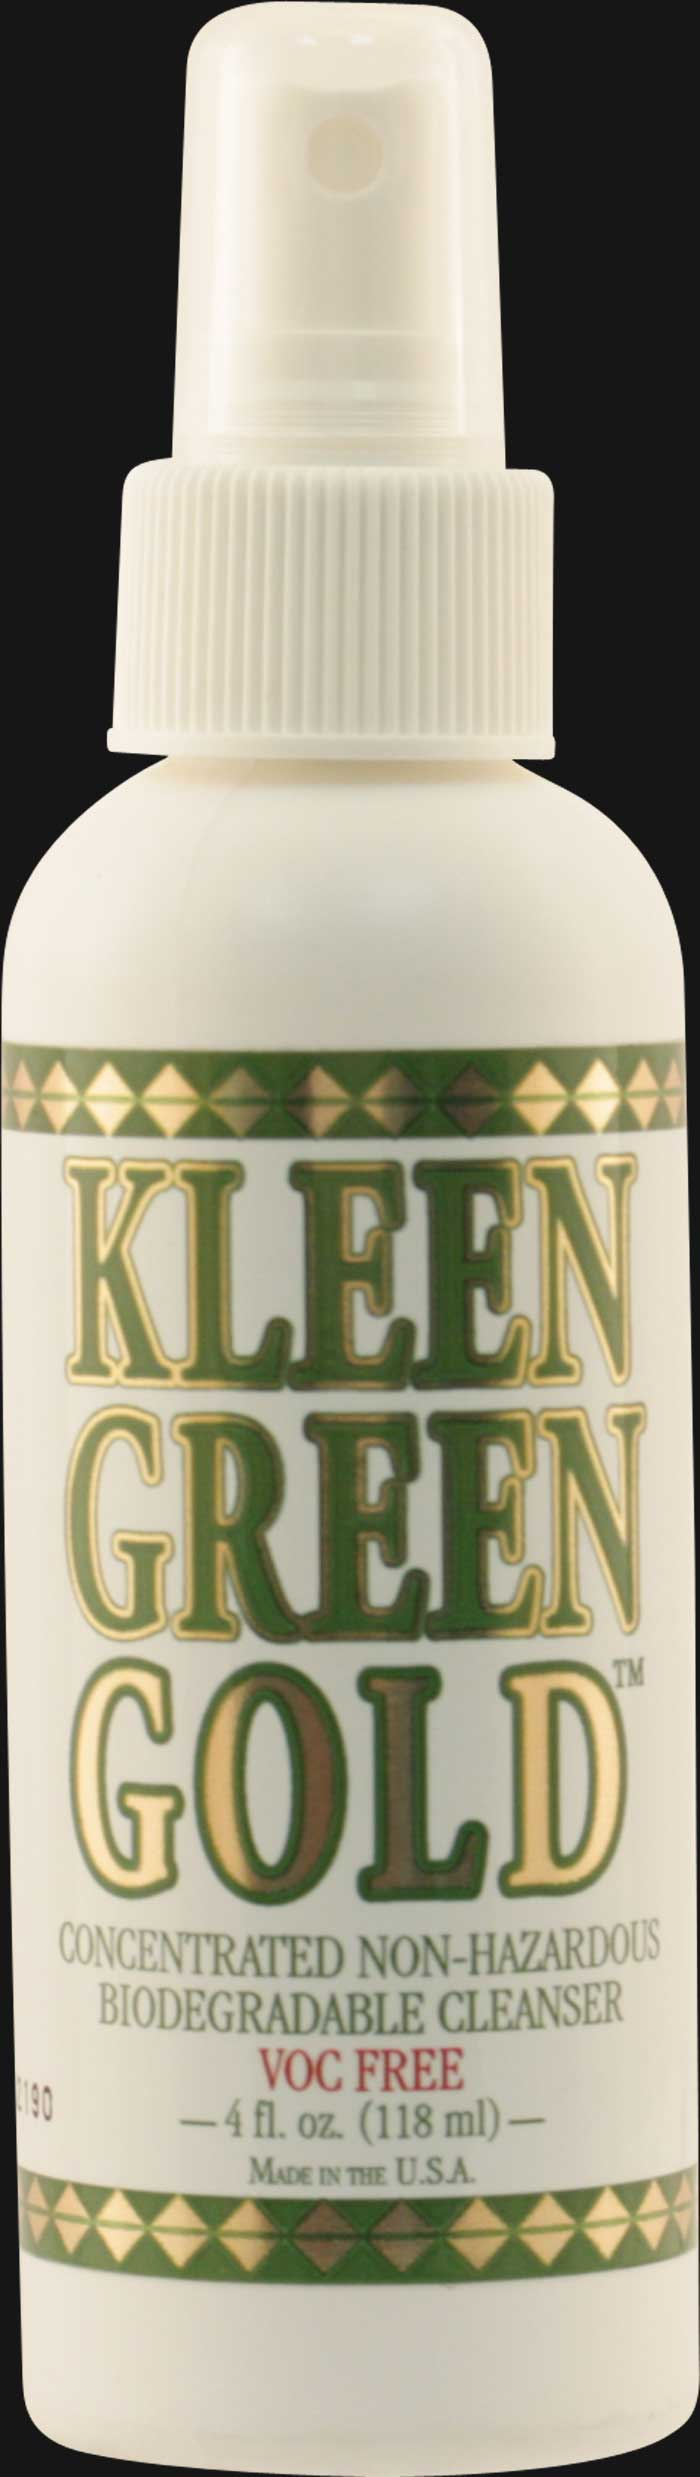 Kleen Green Gold 4 Oz. - Pipe Cleaner Spray